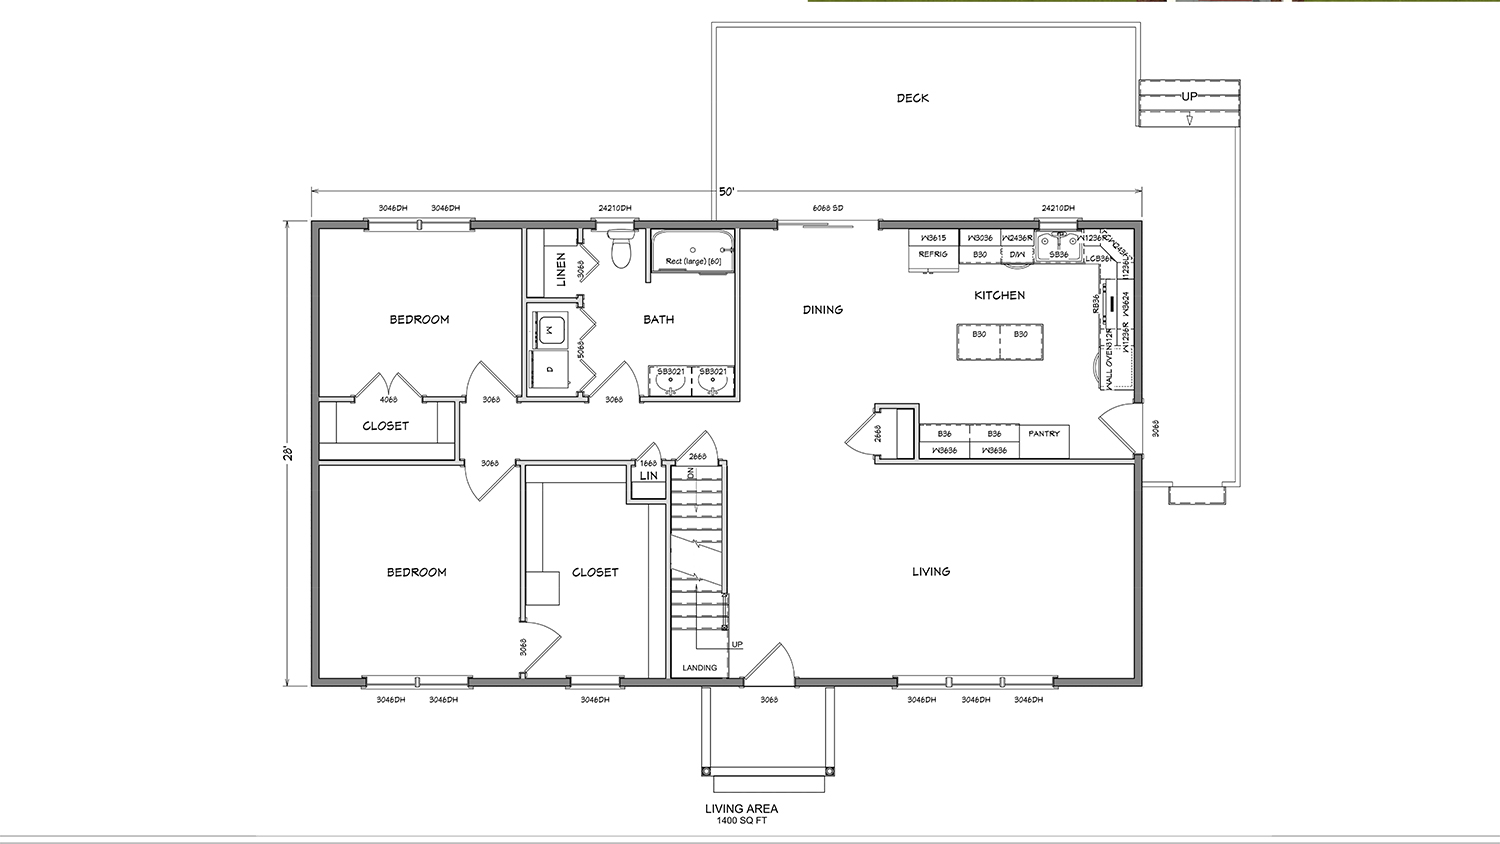 Cape cod modular home floor plans gurus floor for Cape cod house floor plans